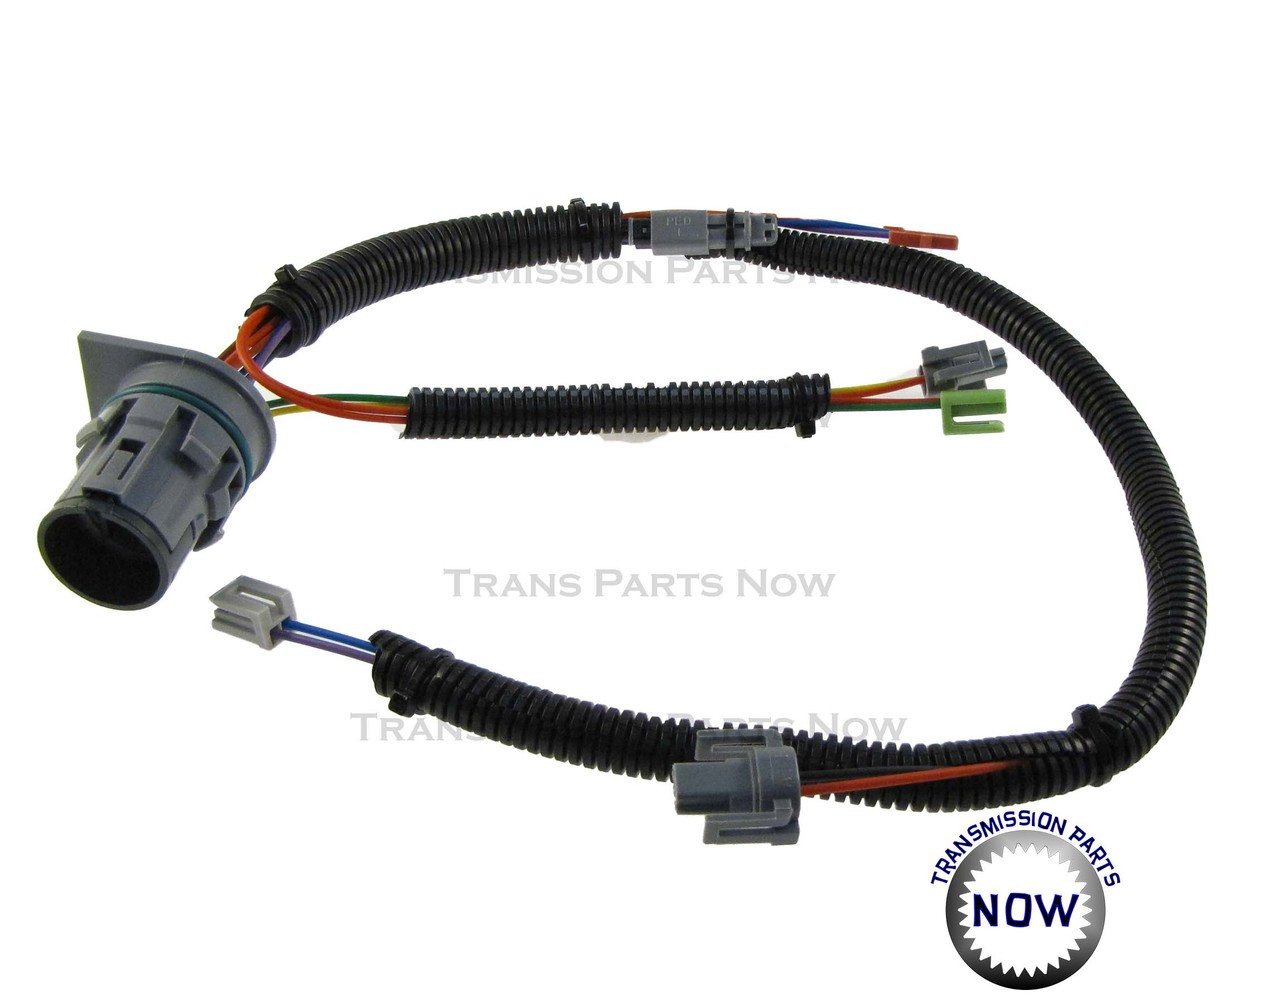 4l80e Wiring Harness - Get Rid Of Wiring Diagram Problem on 4l80e harness replacement, 4l80e transmission harness, 4l80e shifter, psi conversion harness, 4l80e controller, 4l60e to 4l80e conversion harness,